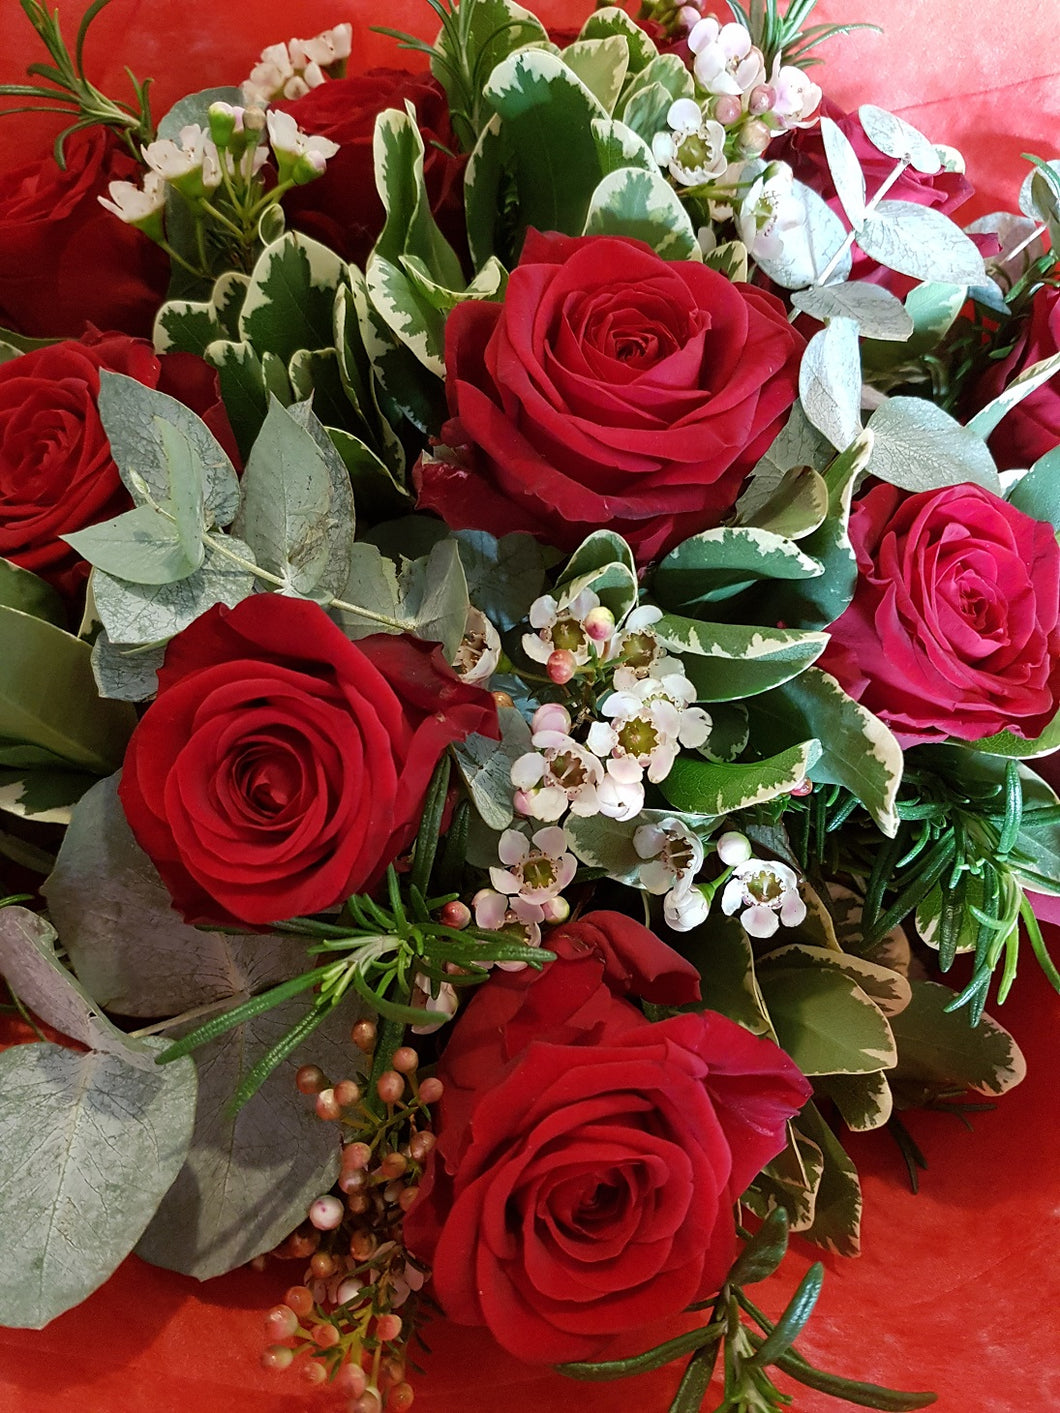 Flower Delivery Alderley Edge, Congleton, Macclesfield, Wilmslow, Knutsford, Cheshire, Staffordshire, Marton, Chelford, Florist, Bouquet, Flower Delivery, UK Delivery, National Flower Delivery, Biddulph, North West Flowers, Mottram St Andrew Flowers, Cheshire Wedding Flowers, Congleton Florist, Florist Biddulph, Flowers, Gillow Heath, Mow Cop, Staffordshire Flowers, South Cheshire, Manchster Wedding Flowers, Ollerton Flowers, Flowers Marton, Flowers Biddulph, Biddulph Flowers, Funeral Flowers,